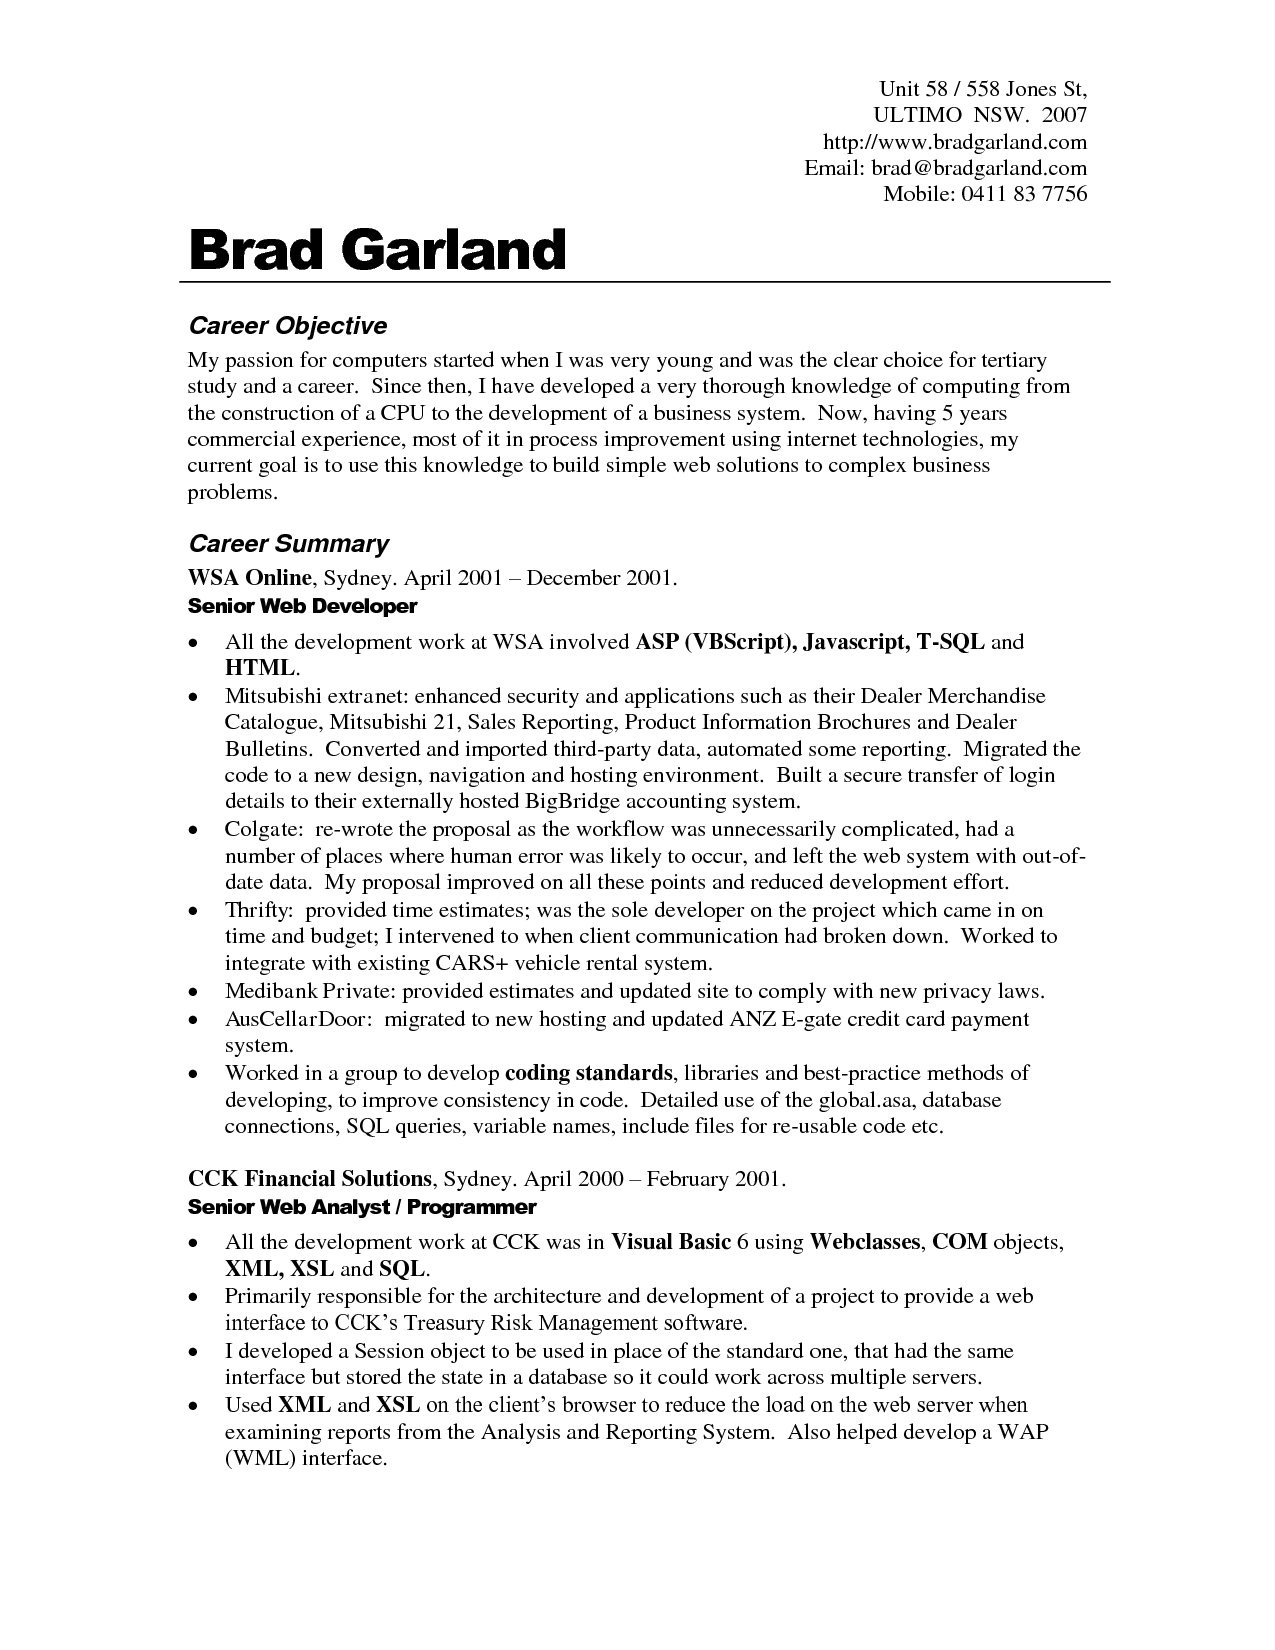 Resume Objectives Samples Resume Objectives Examples Best Templateresume Objective Examples